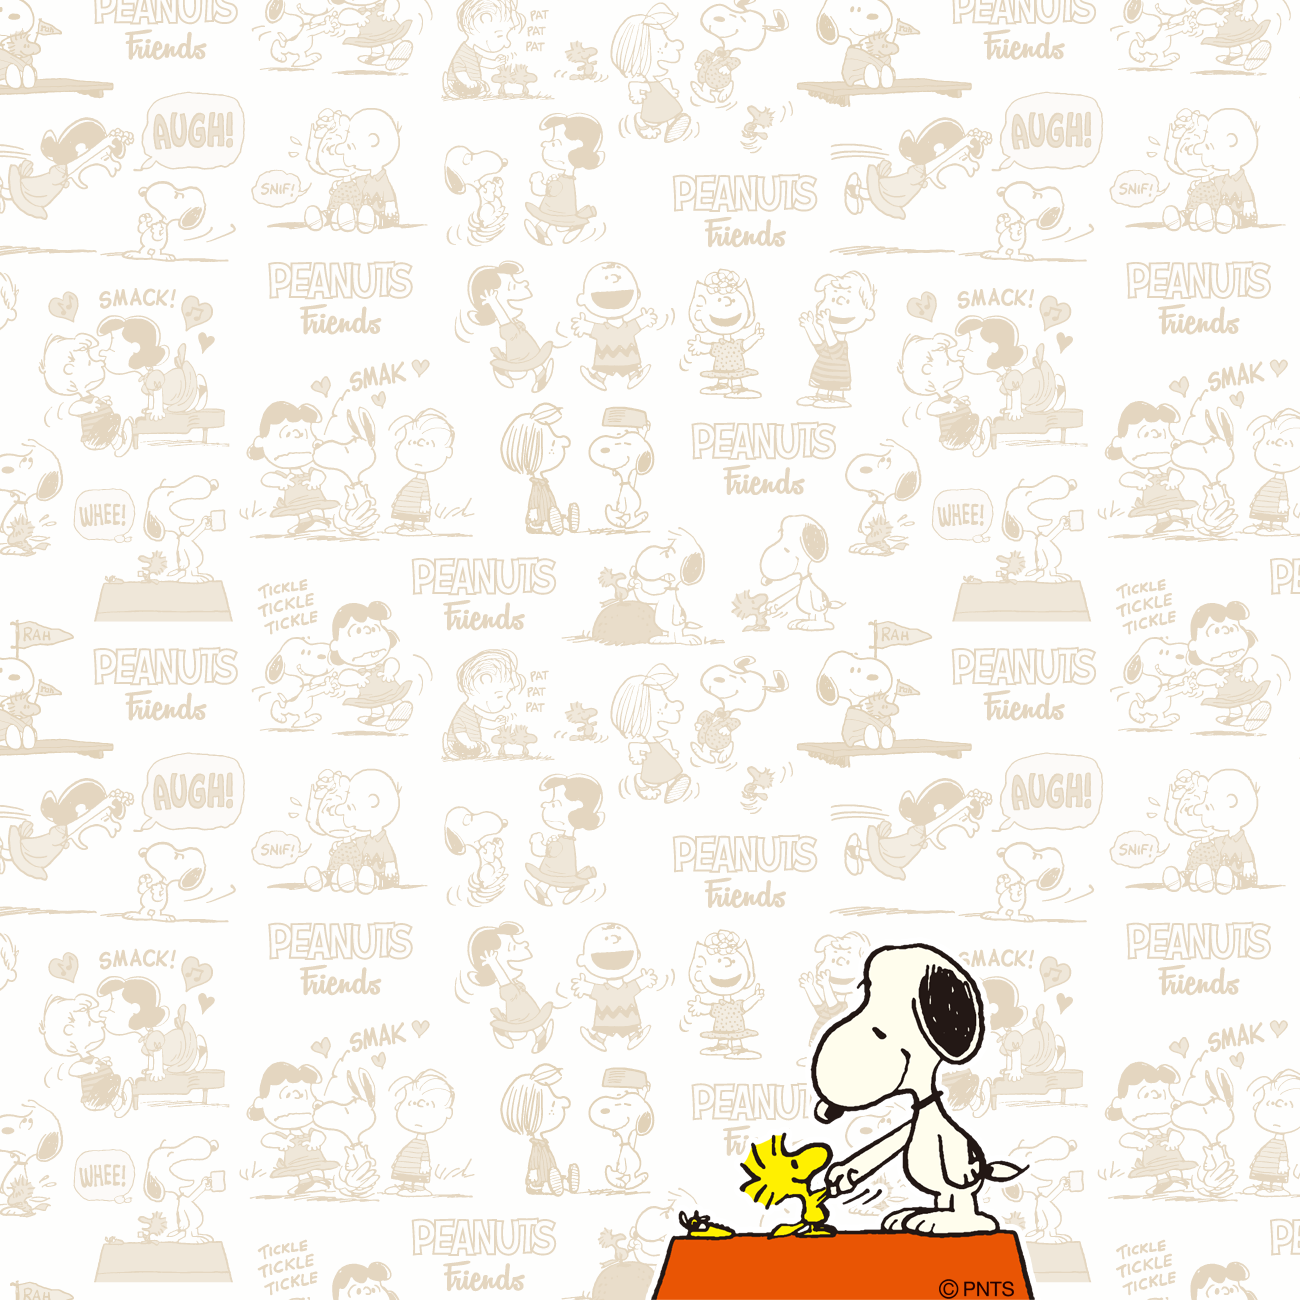 Snoopy And Woodstock スヌーピー 愛 壁紙 スヌーピー イラスト